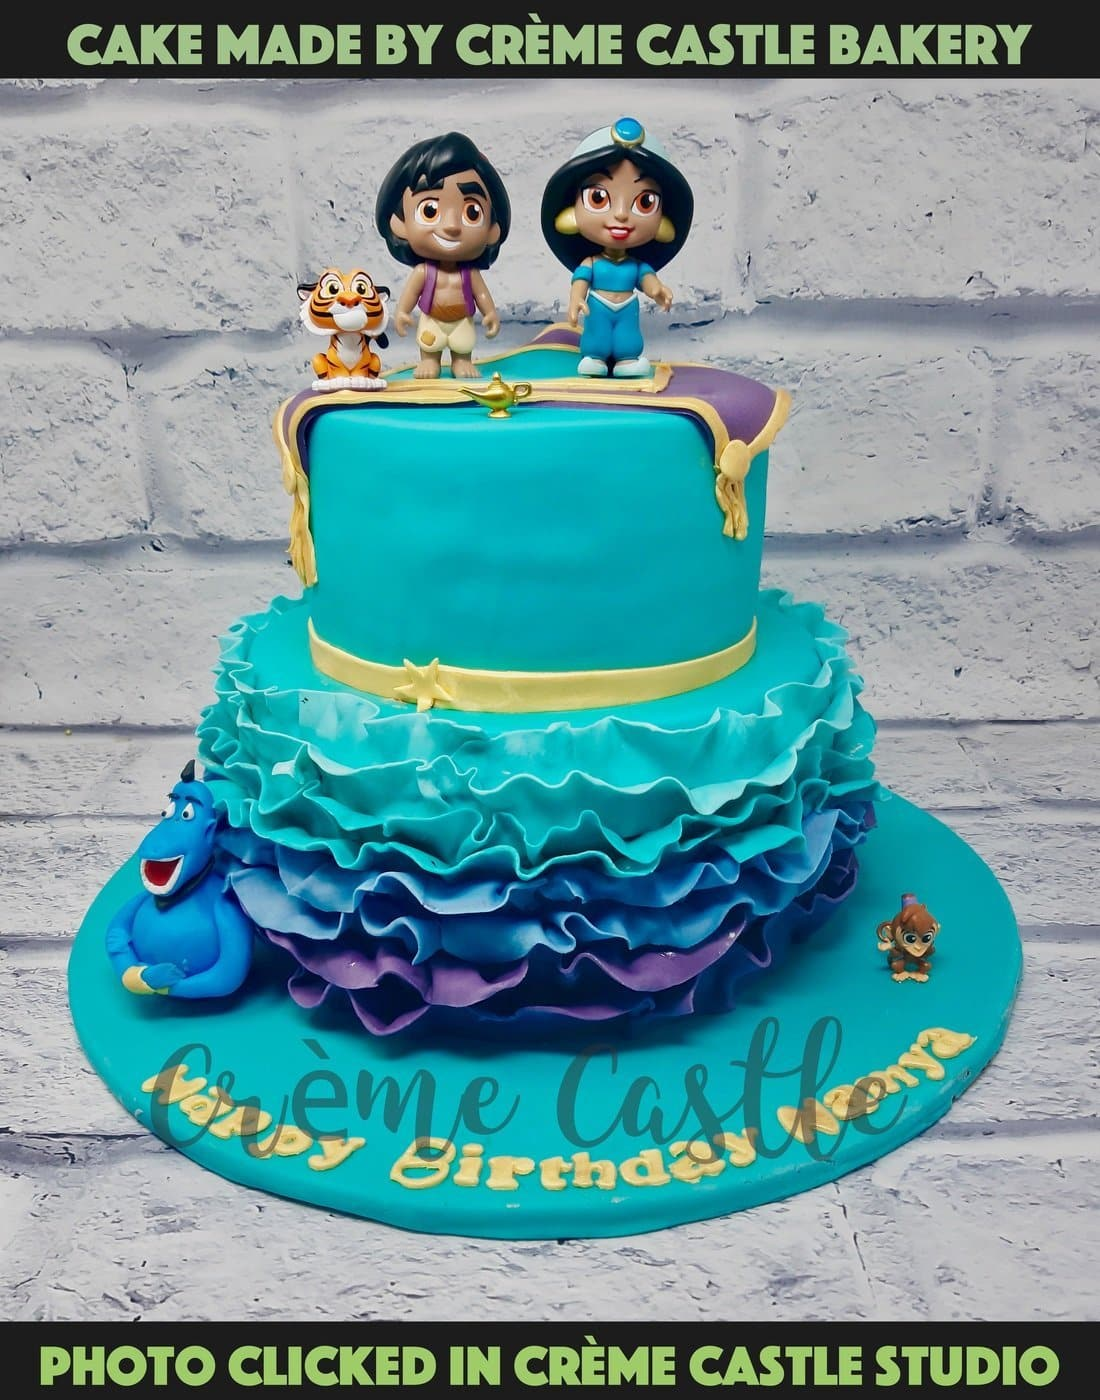 A beautiful cake in Arabian nights theme with all the characters on the cake. A cake that bring magic to your celebration